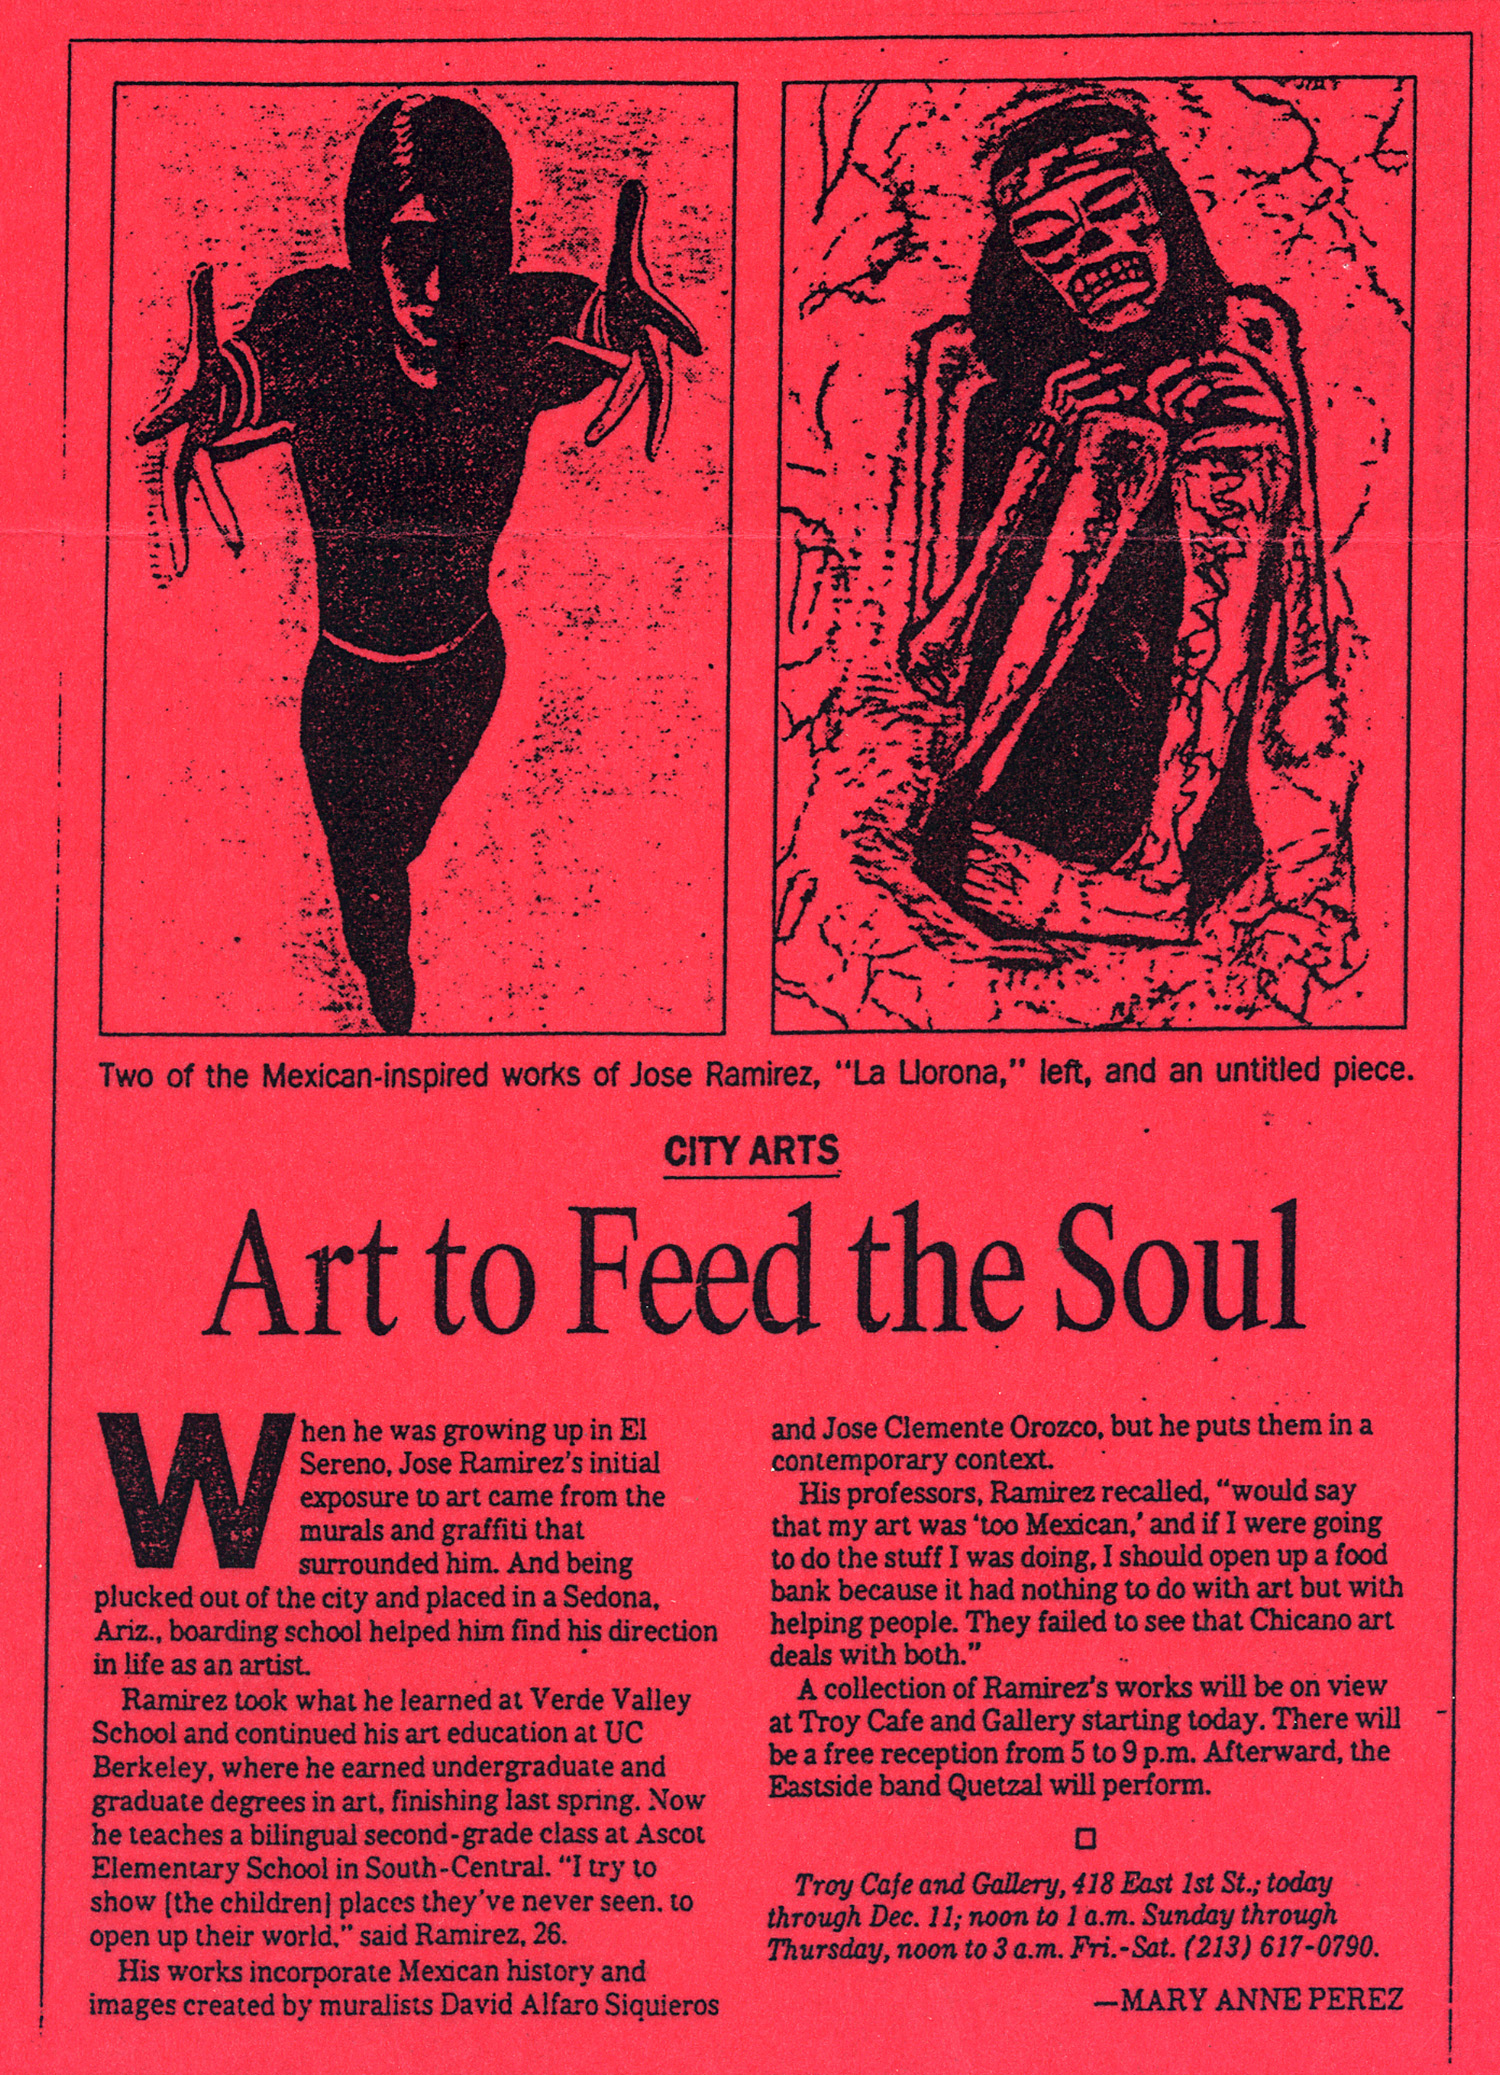 Article from LA Times about a solo show at Troy Cafe, 1993.